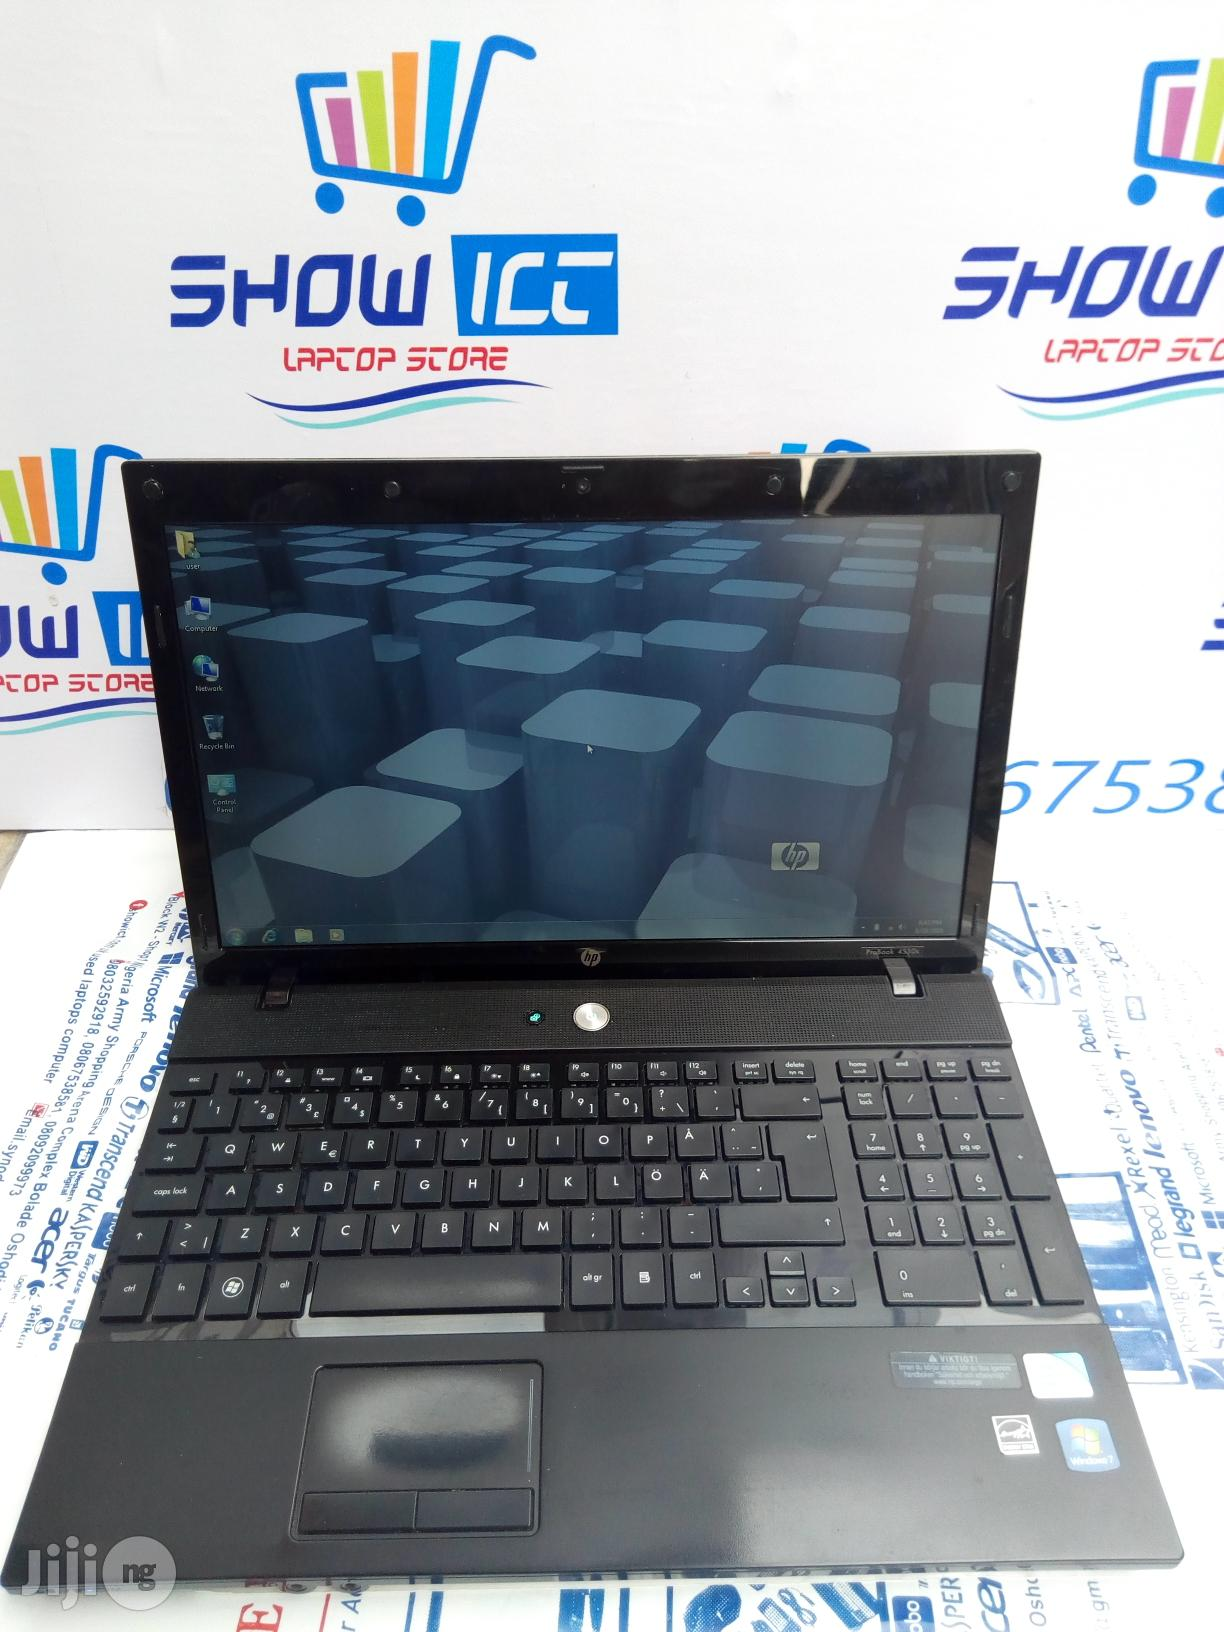 Laptop HP ProBook 4510S 4GB Intel Core 2 Duo HDD 320GB | Laptops & Computers for sale in Maryland, Lagos State, Nigeria